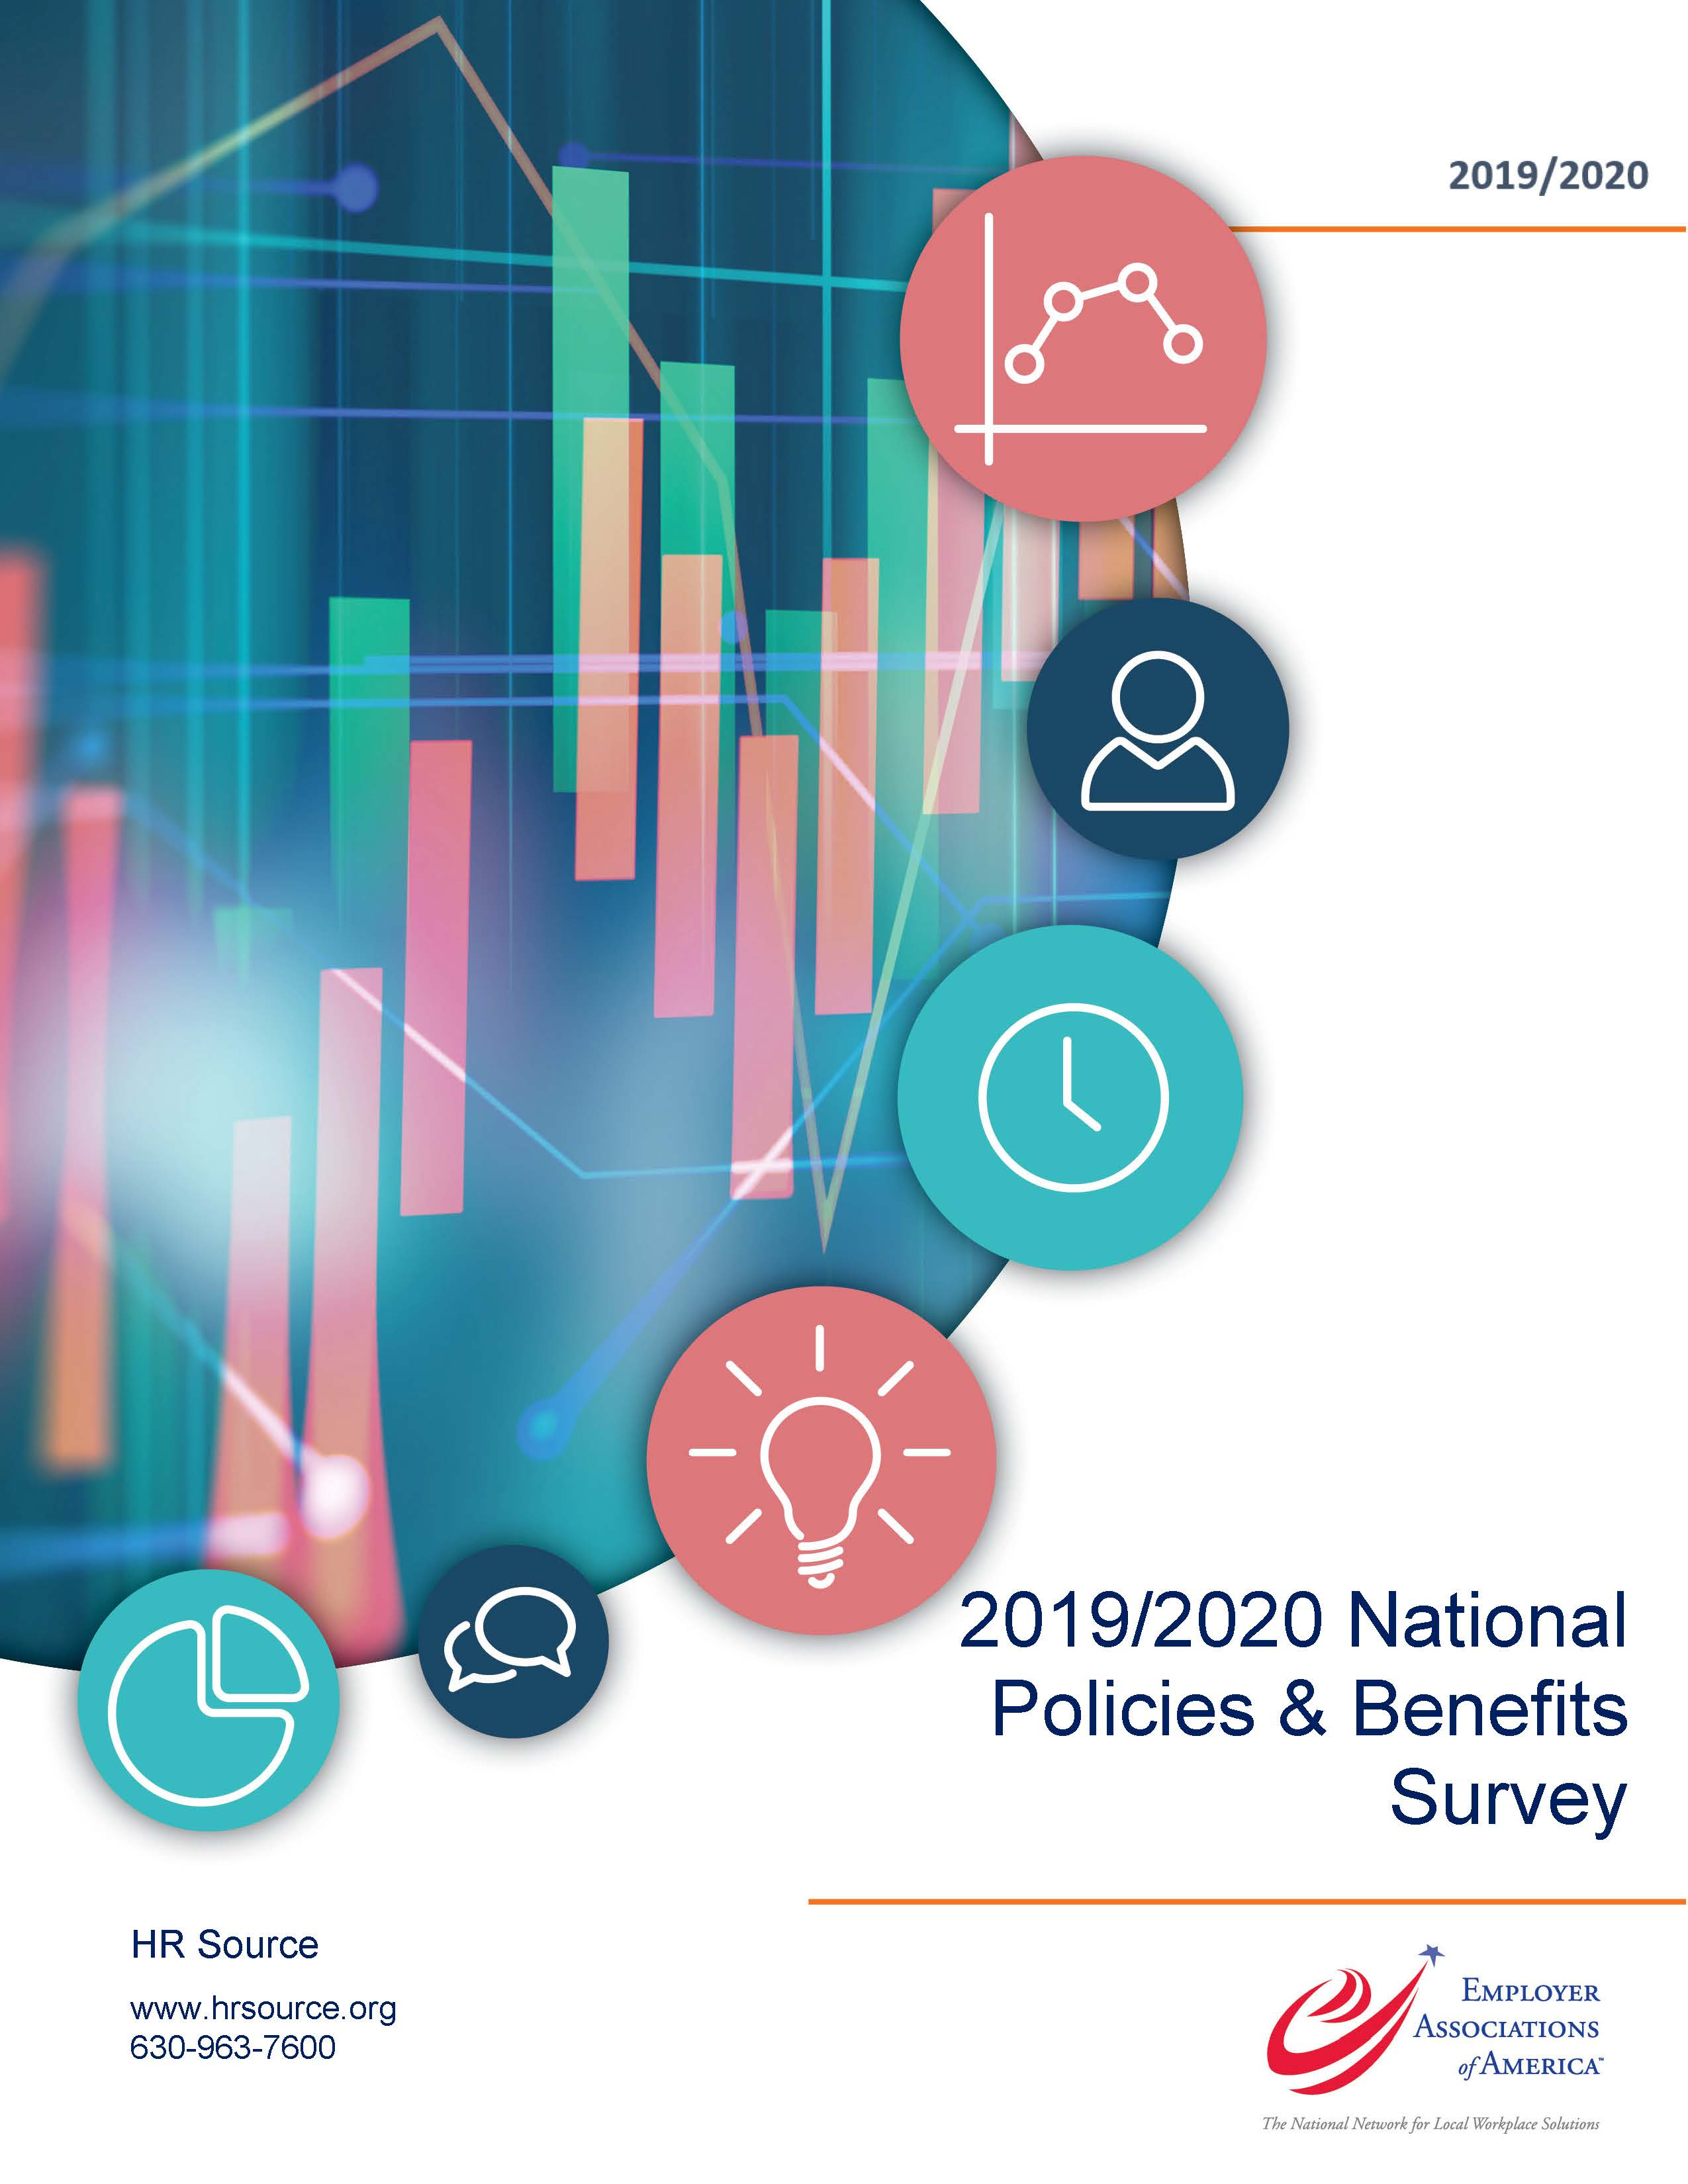 2019/2020 National Policies and Benefits Survey